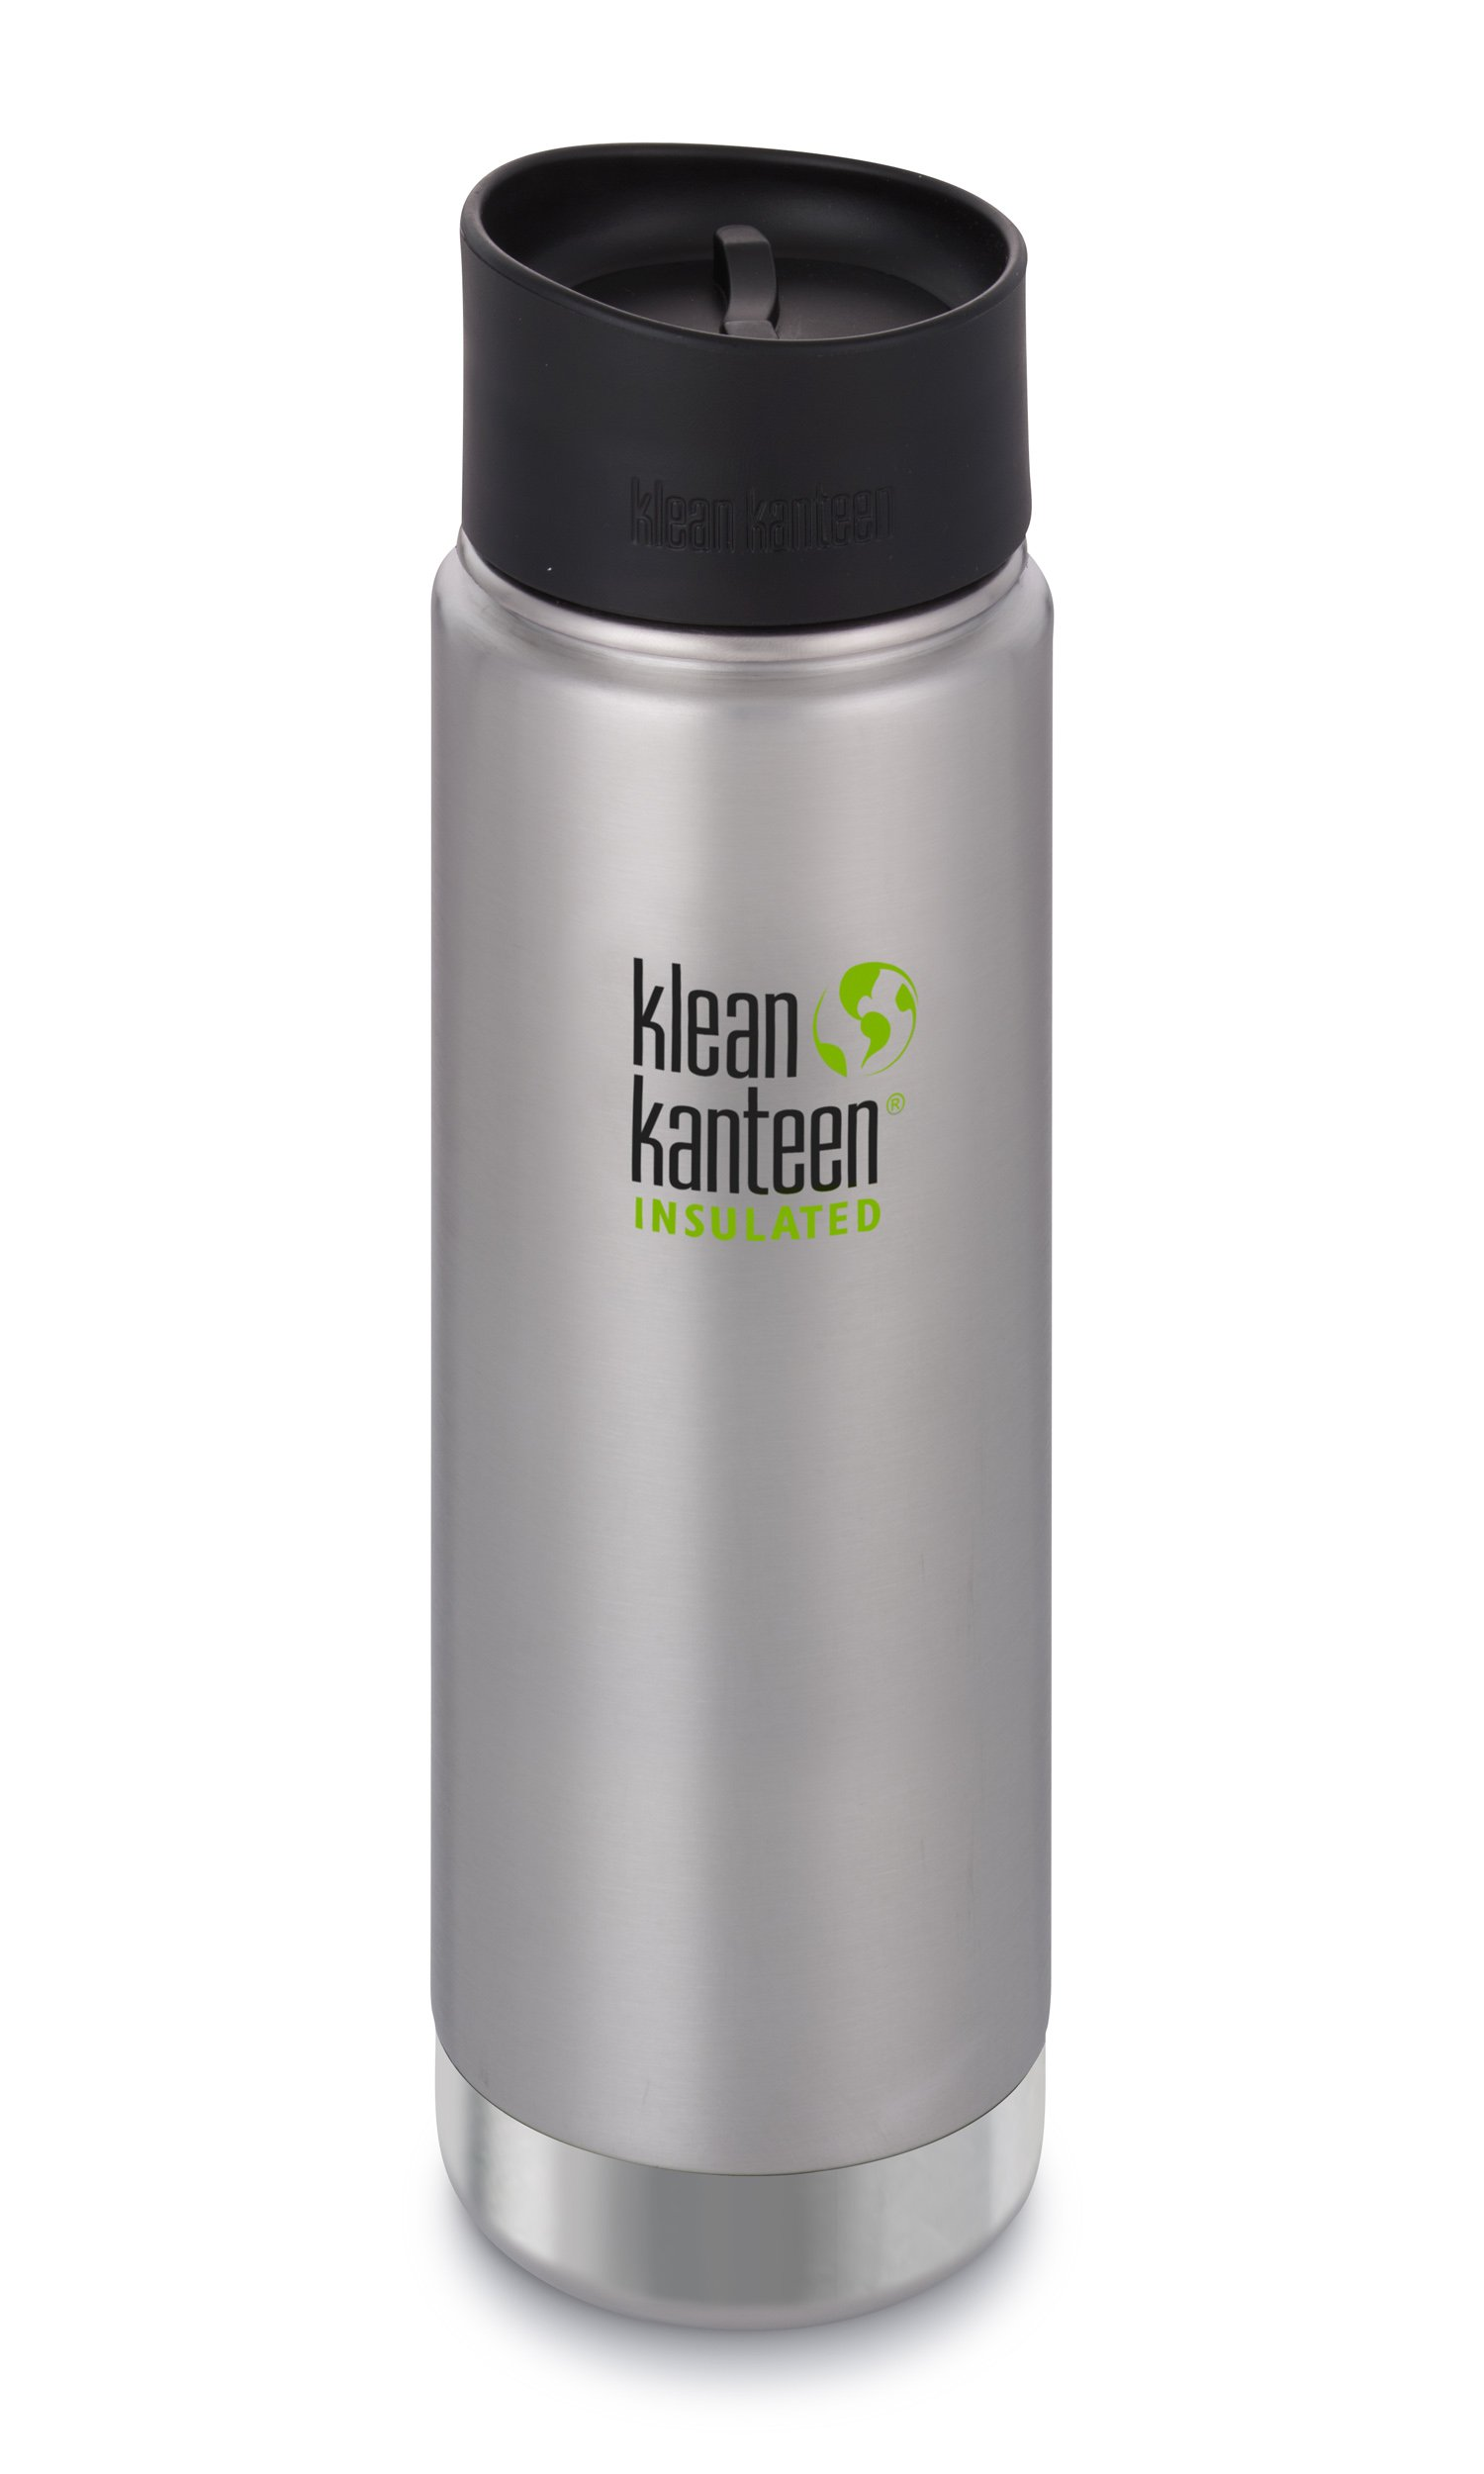 Klean Kanteen 20oz Wide Mouth Stainless Steel Coffee Mug, Double Wall Vacuum Insulated with Leak Proof Café Cap 2.0 - Brushed Stainless (New 2018)